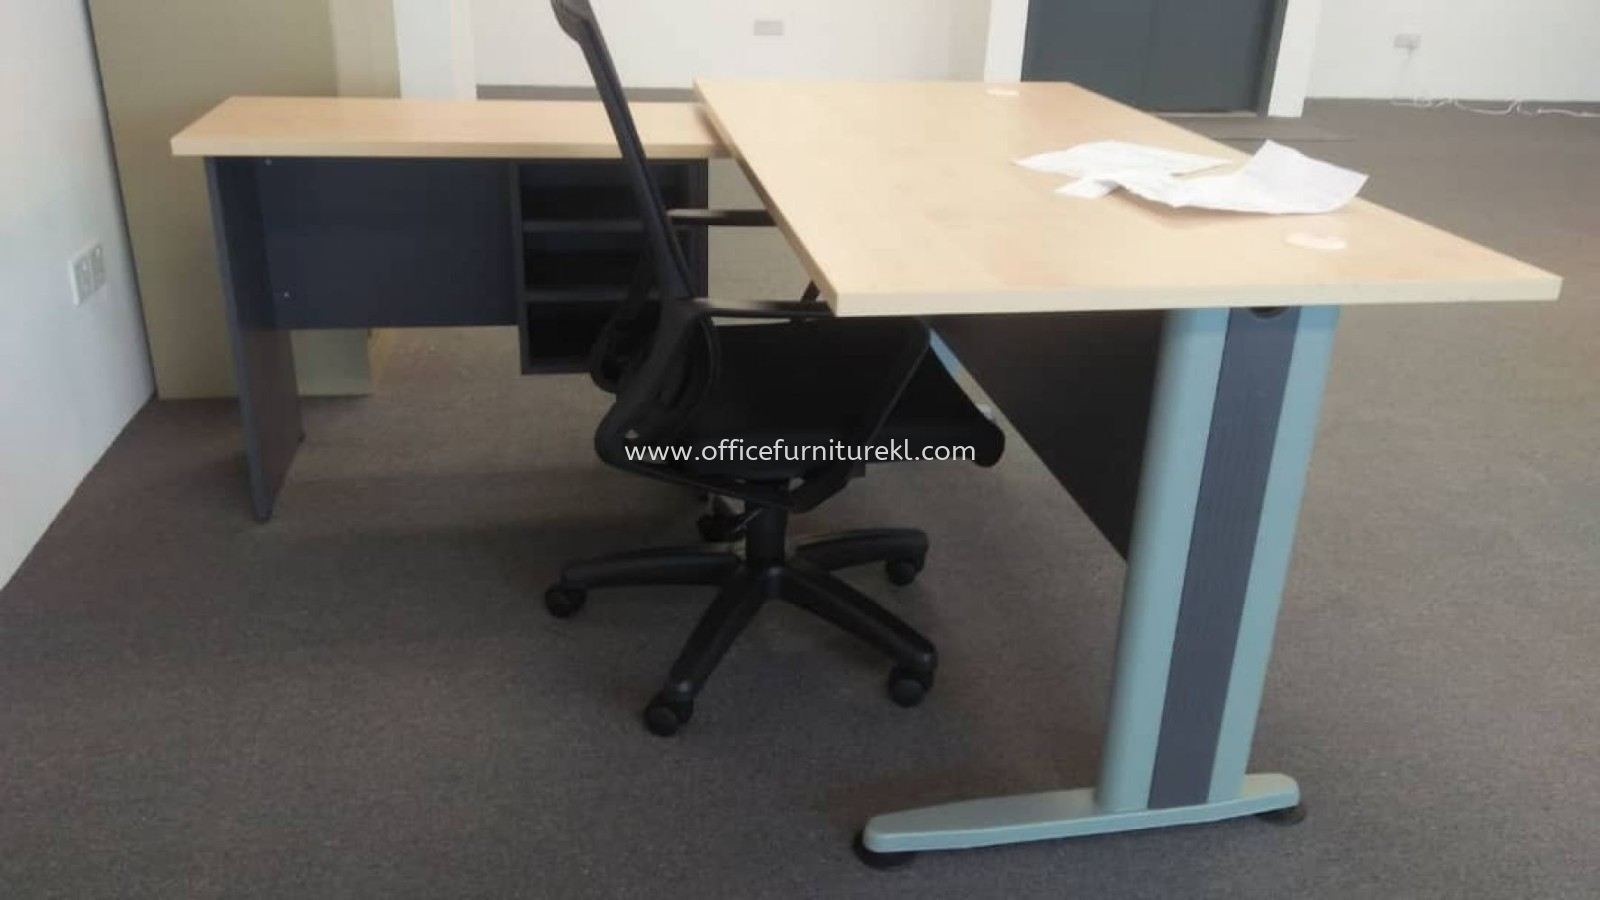 FREE DELIVERY & INSTALLATION TITUS EXECUTIVE OFFICE TABLE AT 158 l SIDE WRITING OFFICE TABLE GS 1060 l EDEX OFFICE MESH CHAIRl OFFICE FURNITURE l PUDU l KUALA LUMPUR l TOP 10 POPULAR ITEM